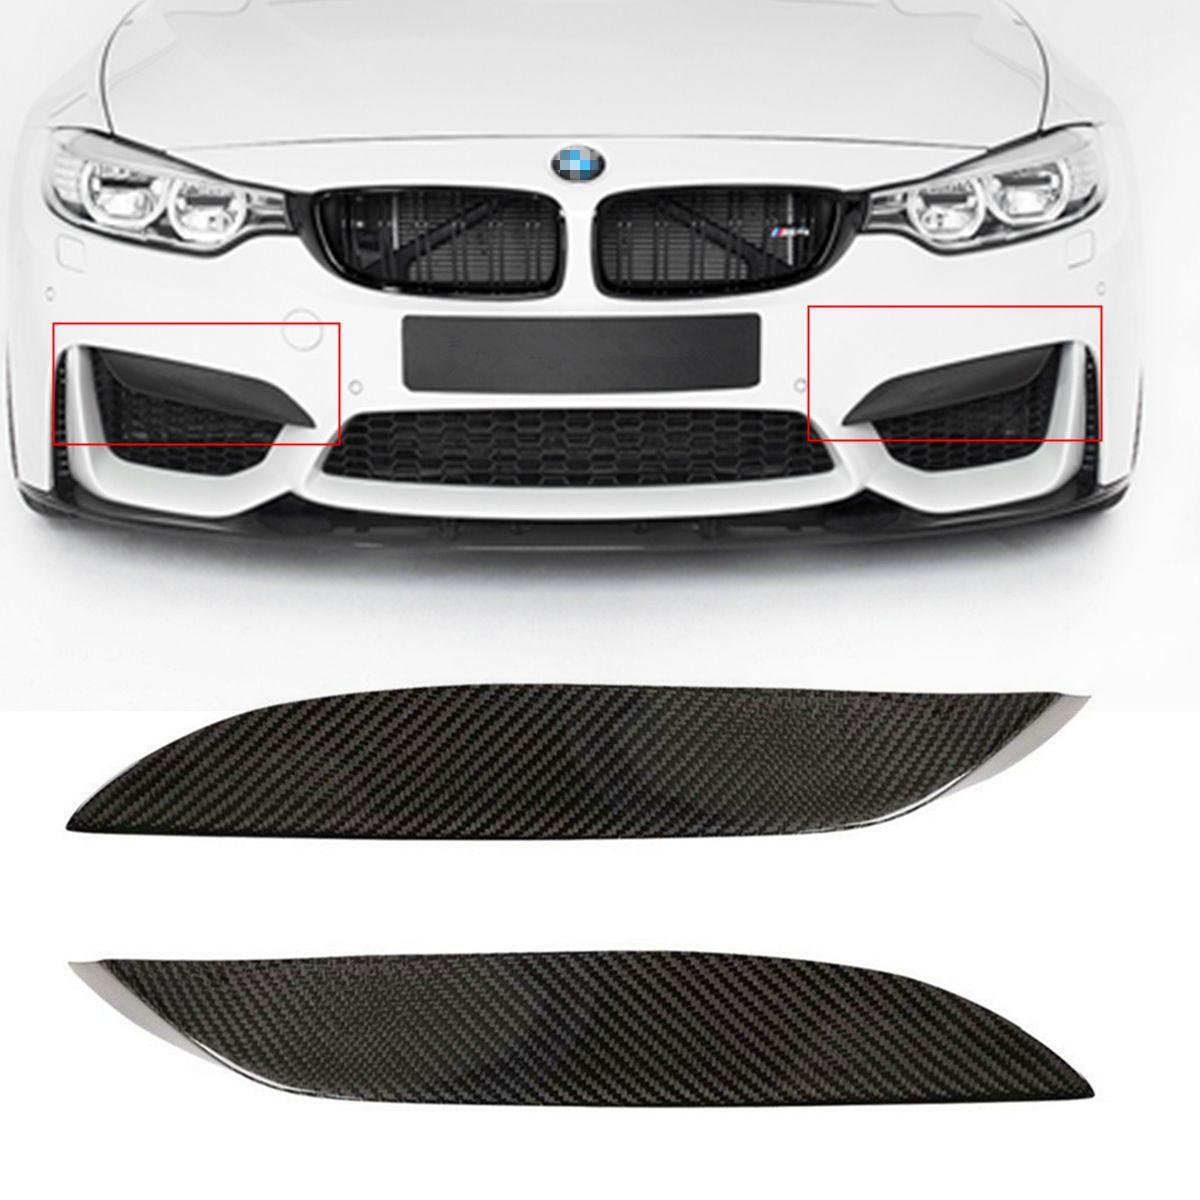 Universal Car Front Bumper Lip Fit For BMW F80 M3 CF Real Carbon Fiber Upper Side Splitter Canards Lip Front Bumper Protector 5pcs android tv box tvip 410 412 box amlogic quad core 4gb android linux dual os smart tv box support h 265 airplay dlna 250 254